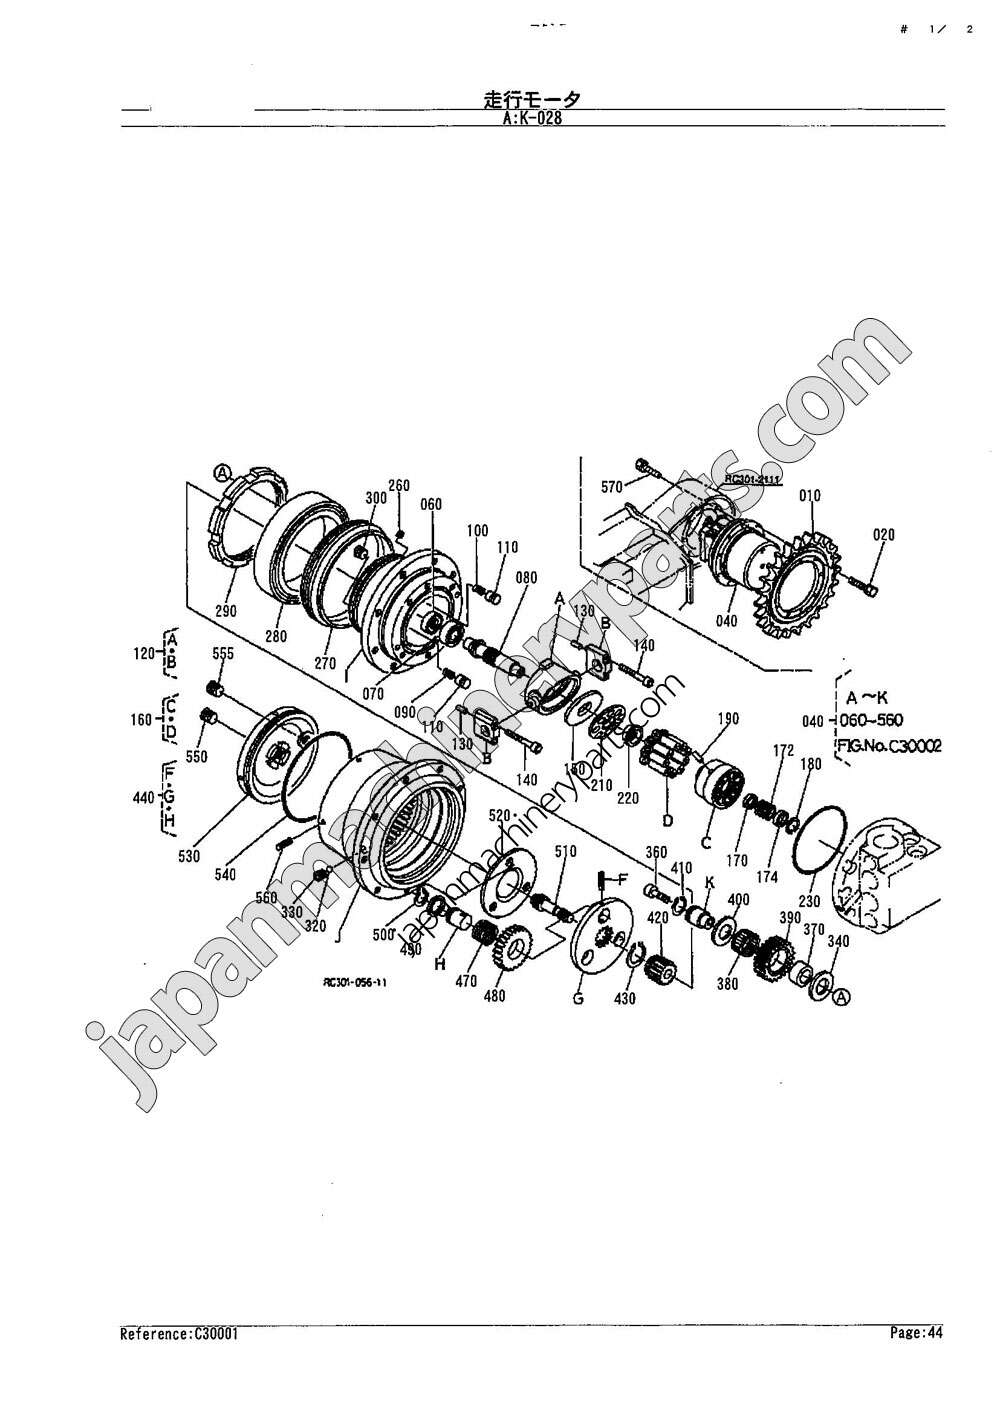 Parts for kubota k028 final drive pooptronica Images